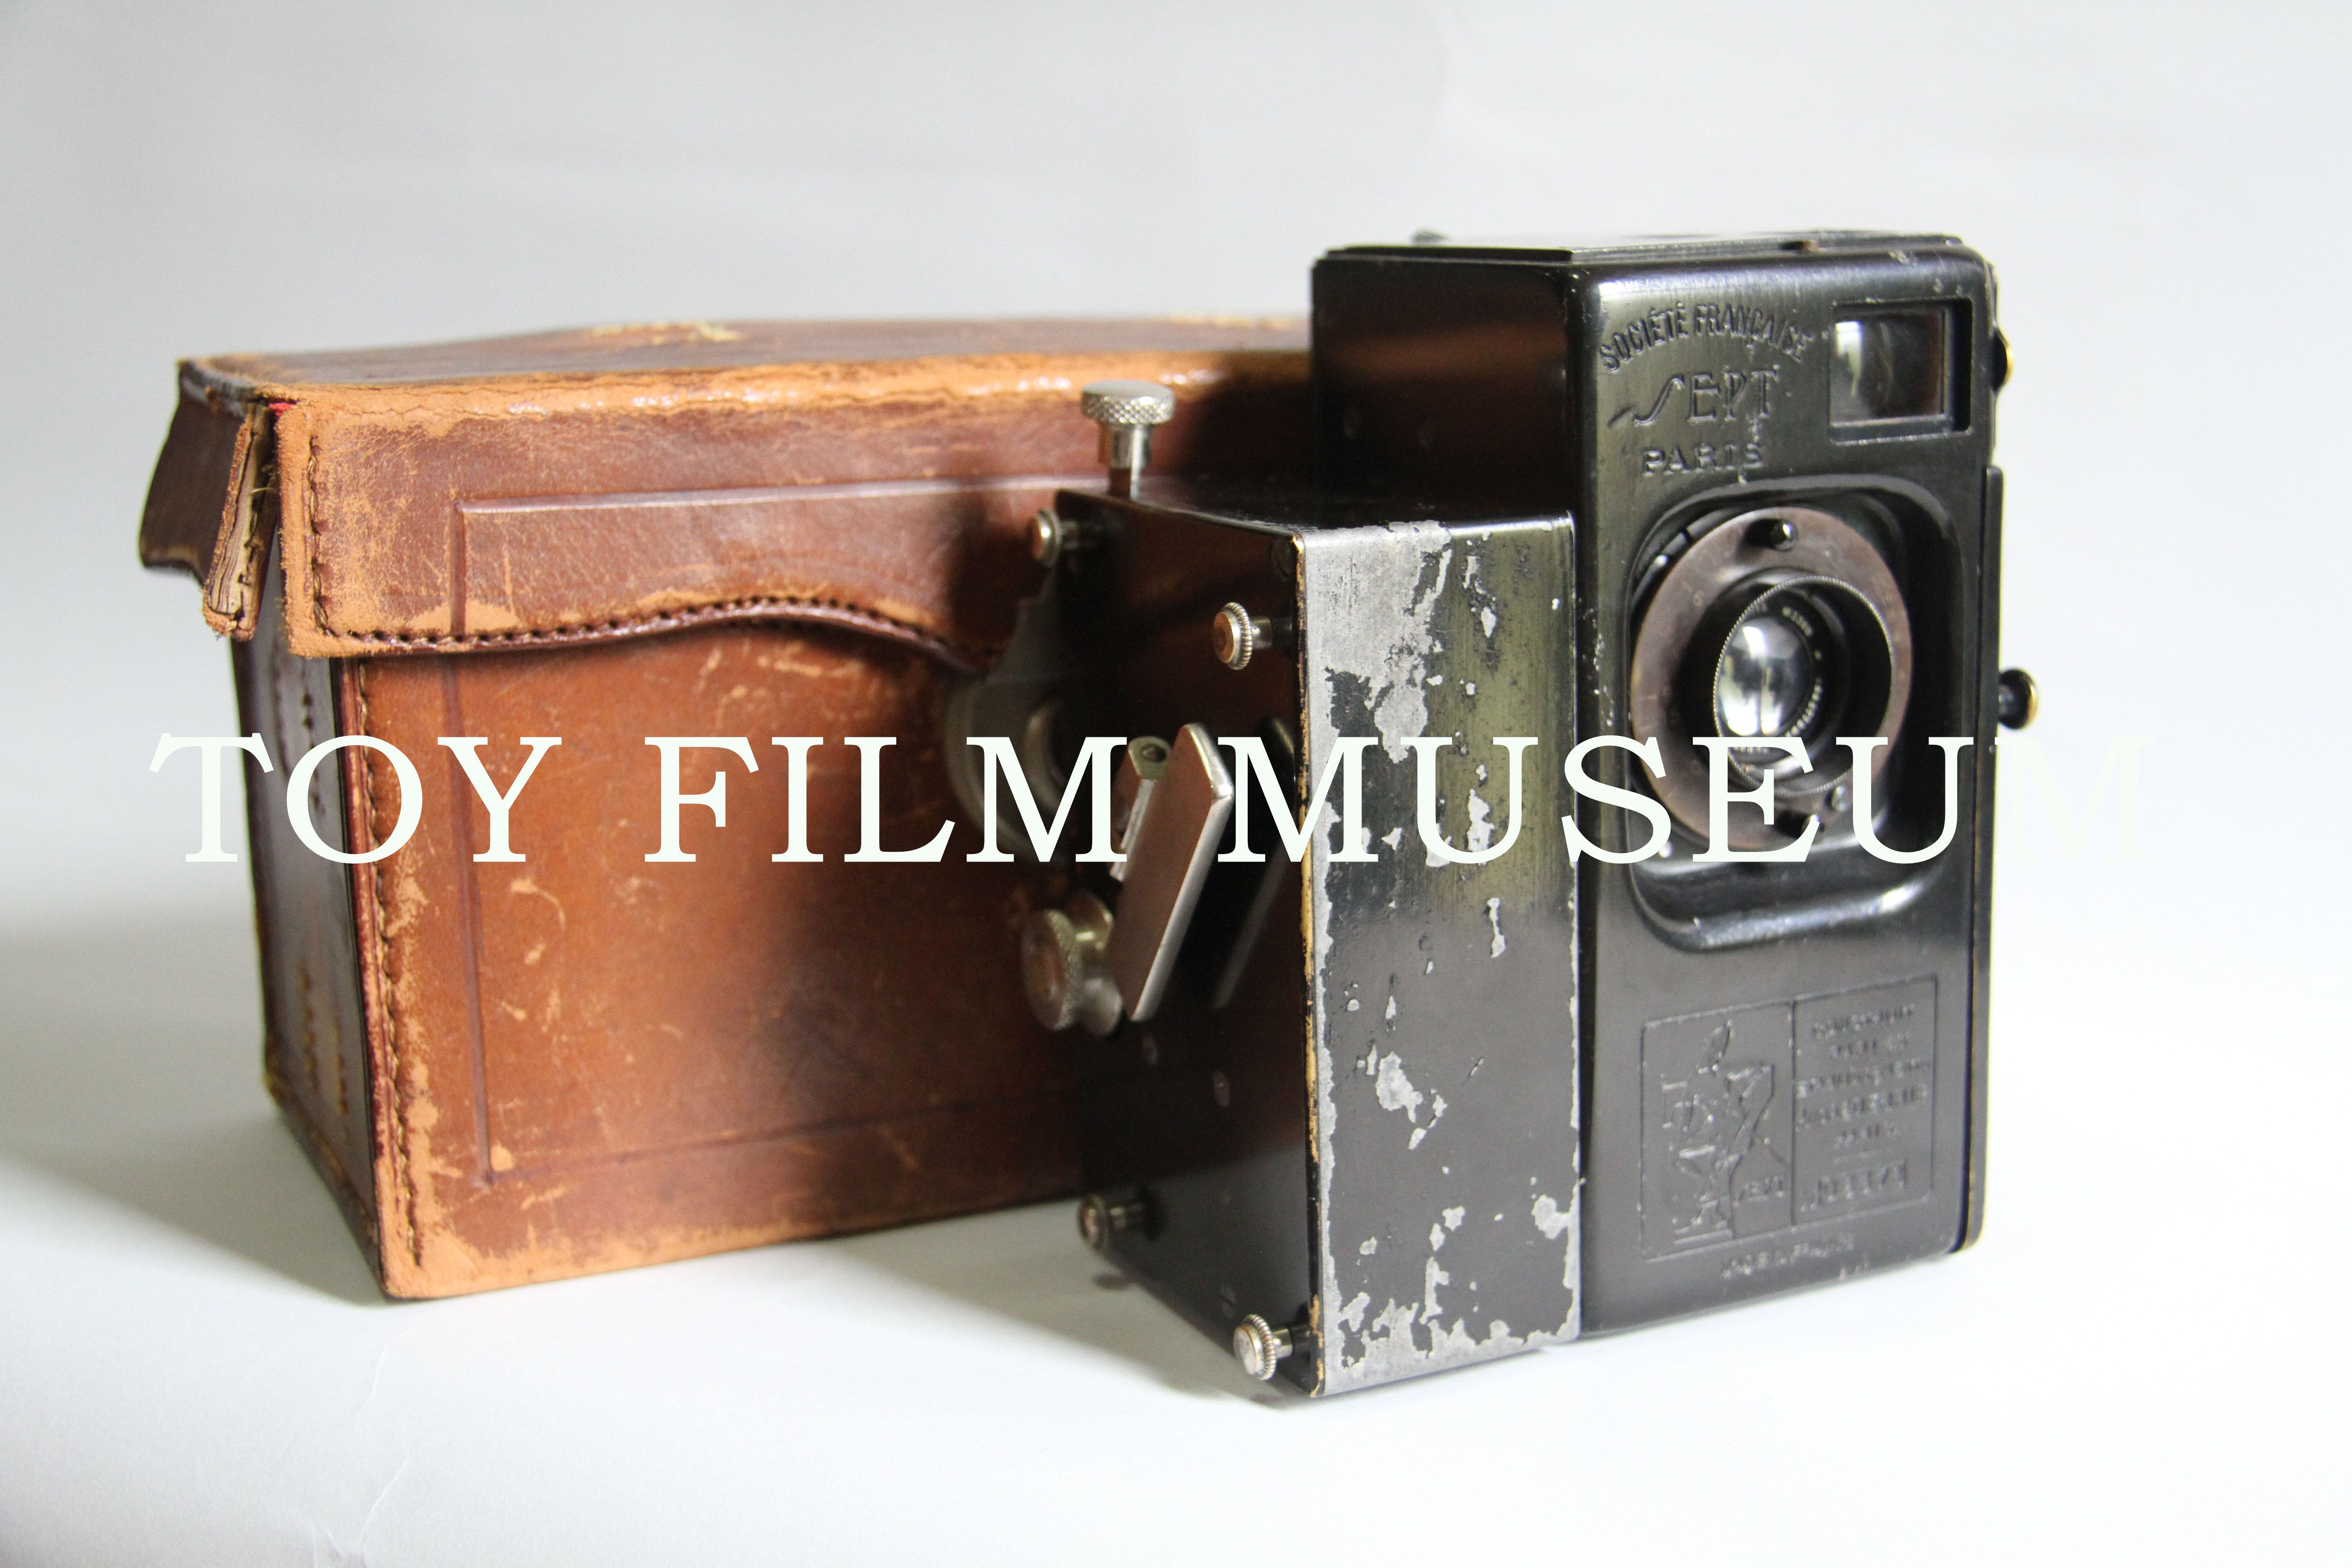 SEPT 35mm Movie Camera